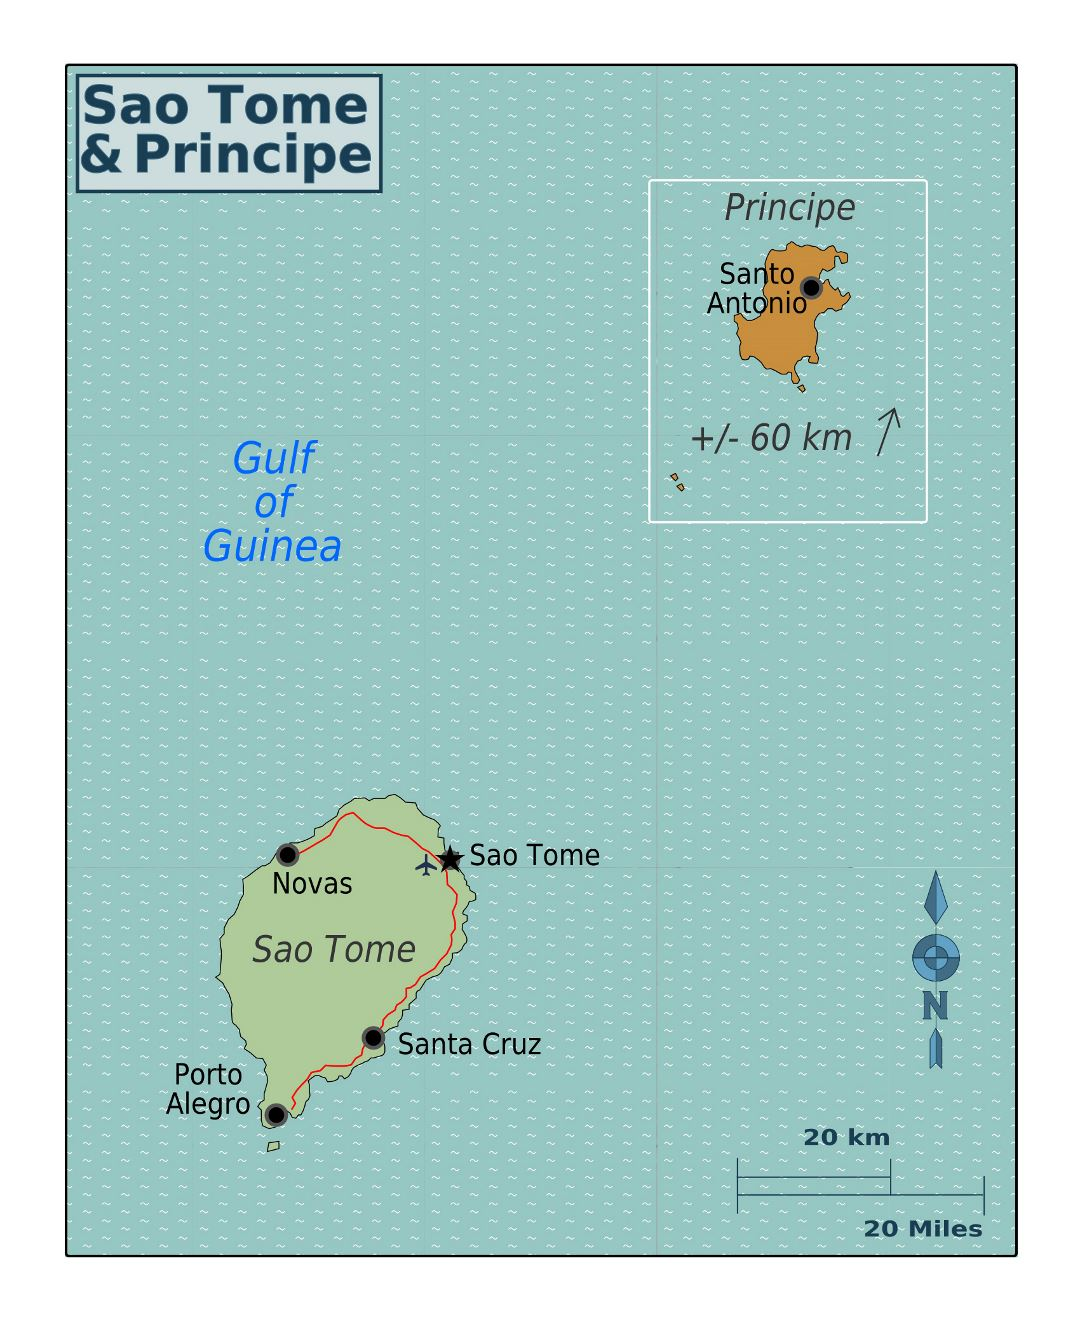 Large regions map of Sao Tome and Principe